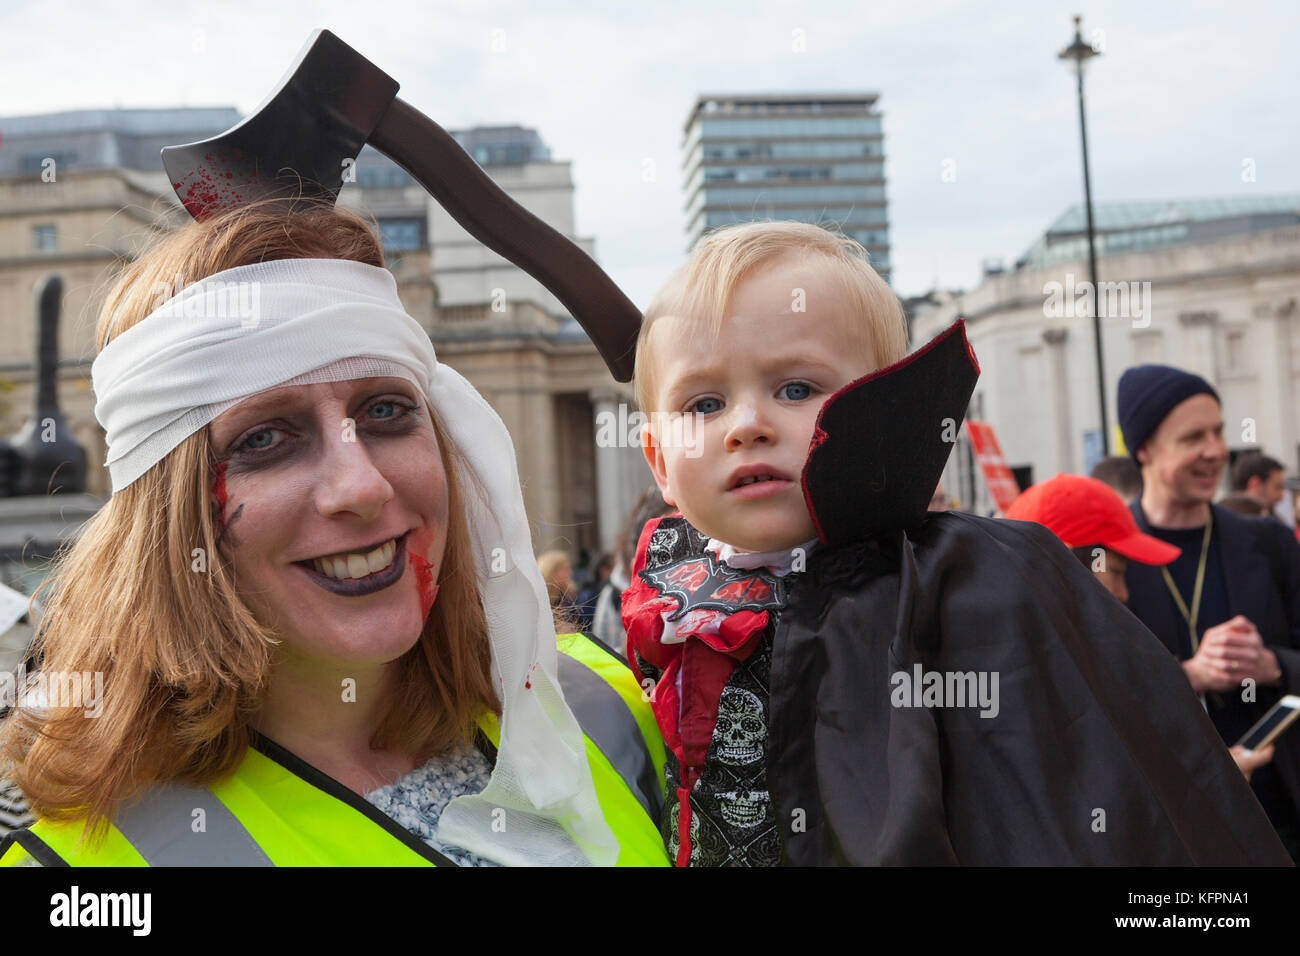 London, UK. 31st October, 2017. Campaigners stage a demonstration dressed up as (Egyptian) mummies in support of Stock Photo